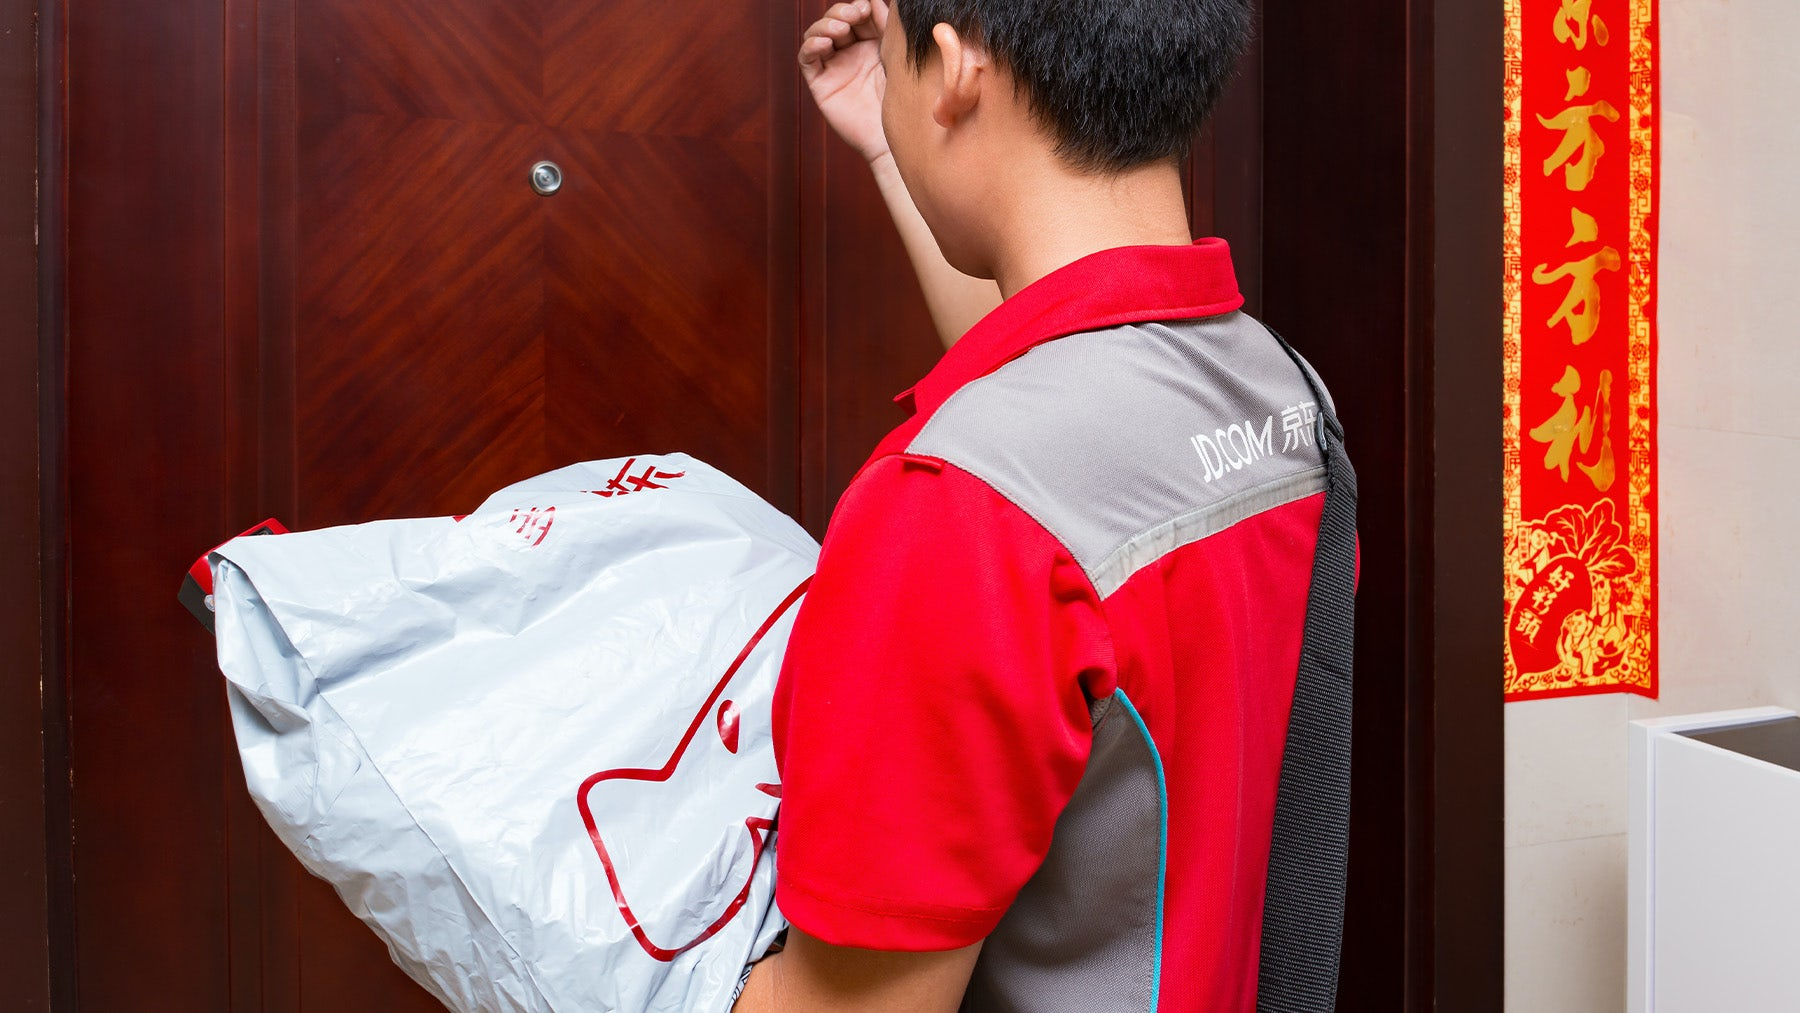 E-commerce delivery from JD.com. Shutterstock.